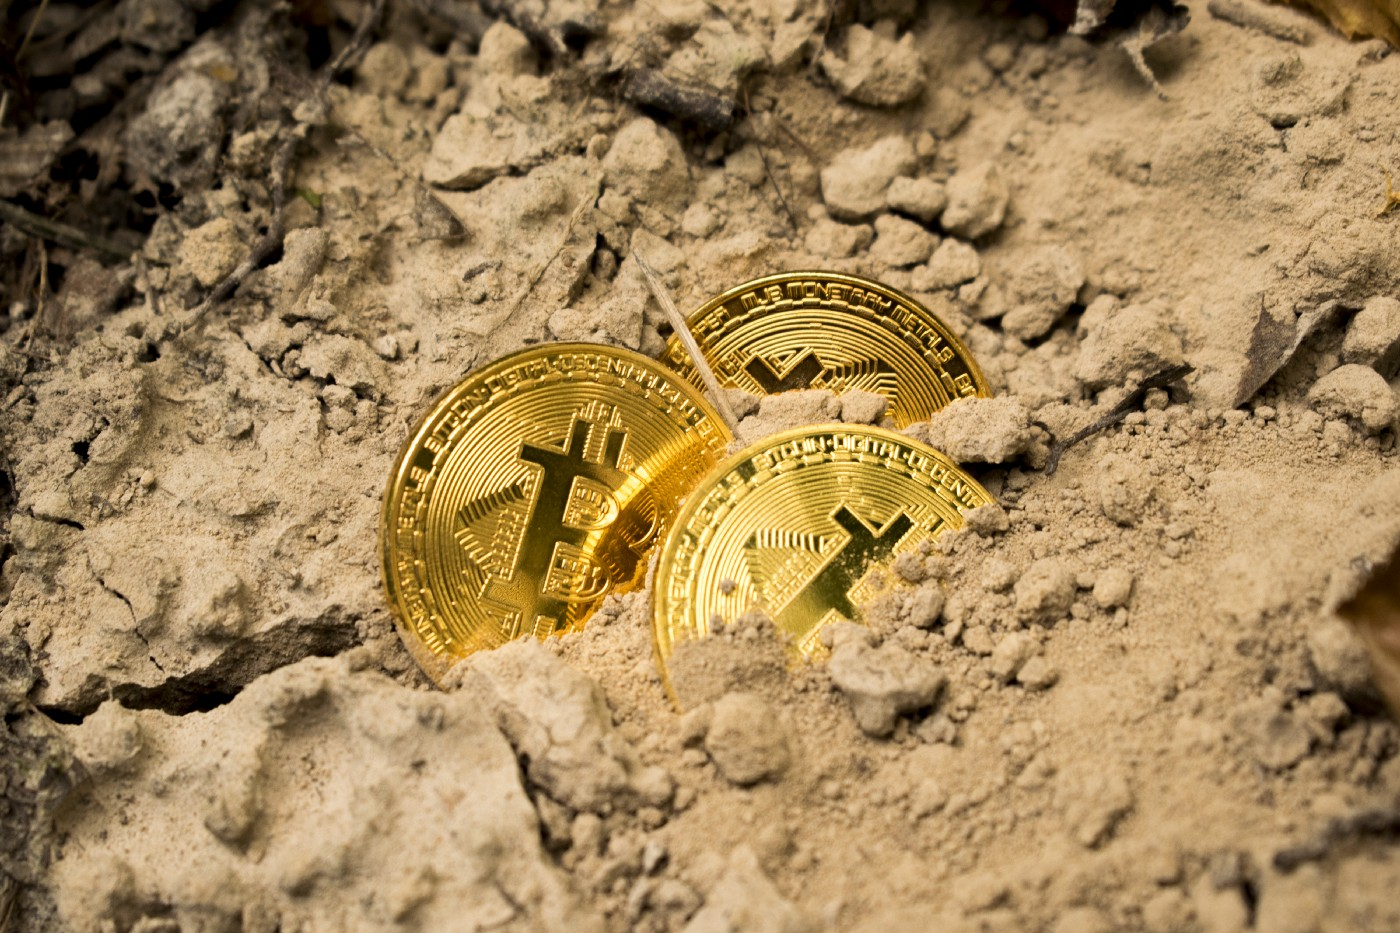 """Bitcoin """"coins"""" uncovered from dirt. A metaphor for """"mining"""" bitcoin."""